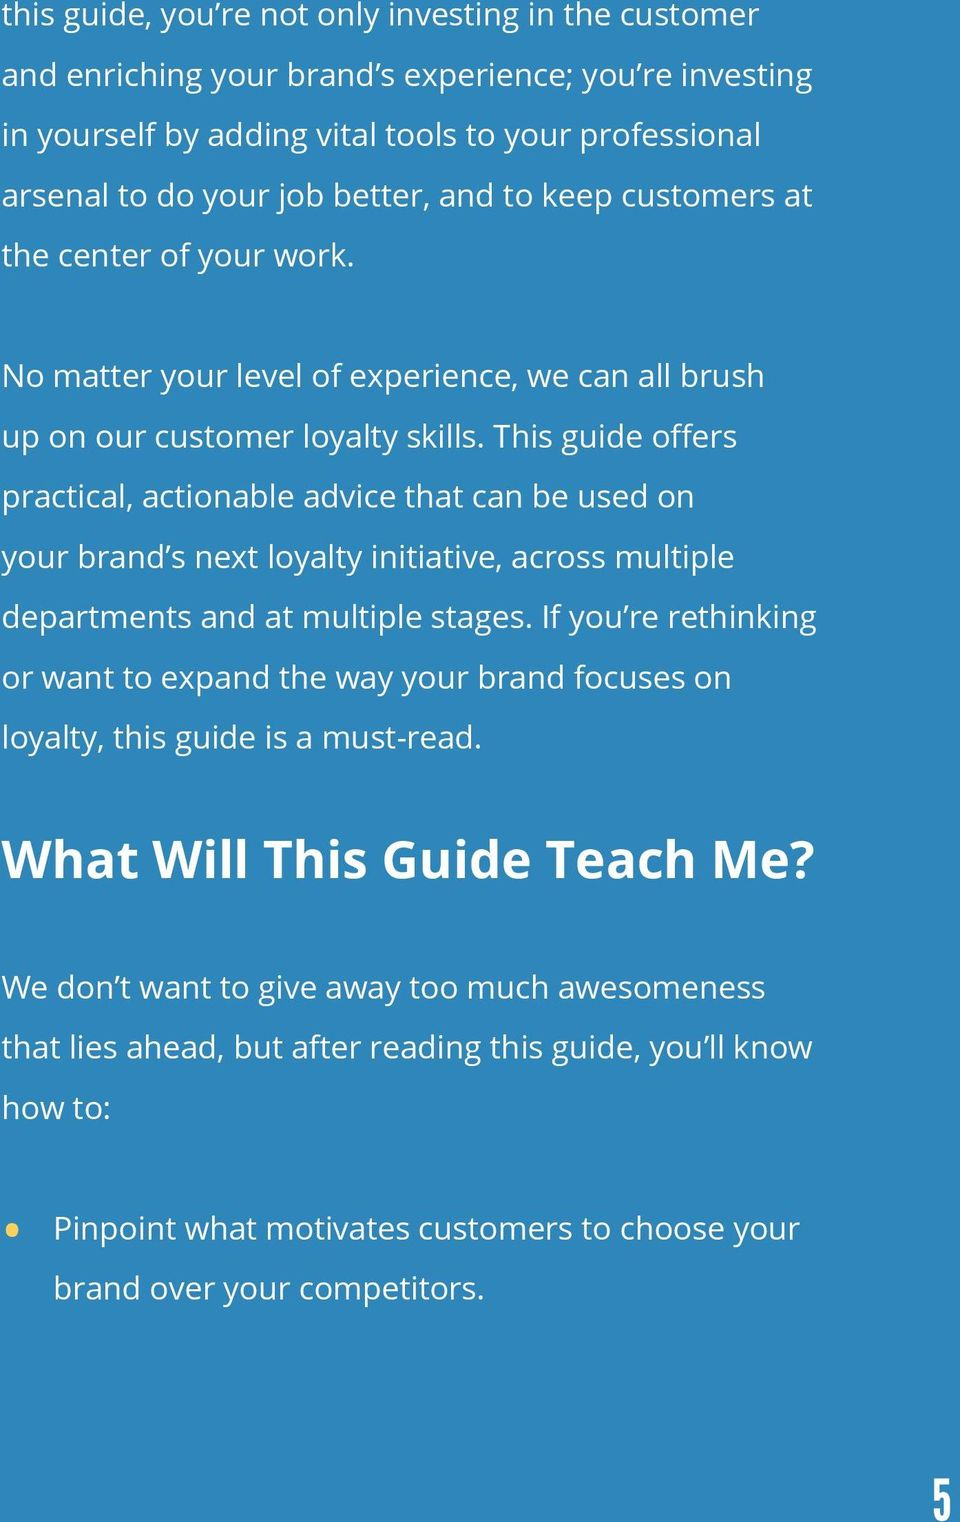 This guide offers practical, actionable advice that can be used on your brand s next loyalty initiative, across multiple departments and at multiple stages.